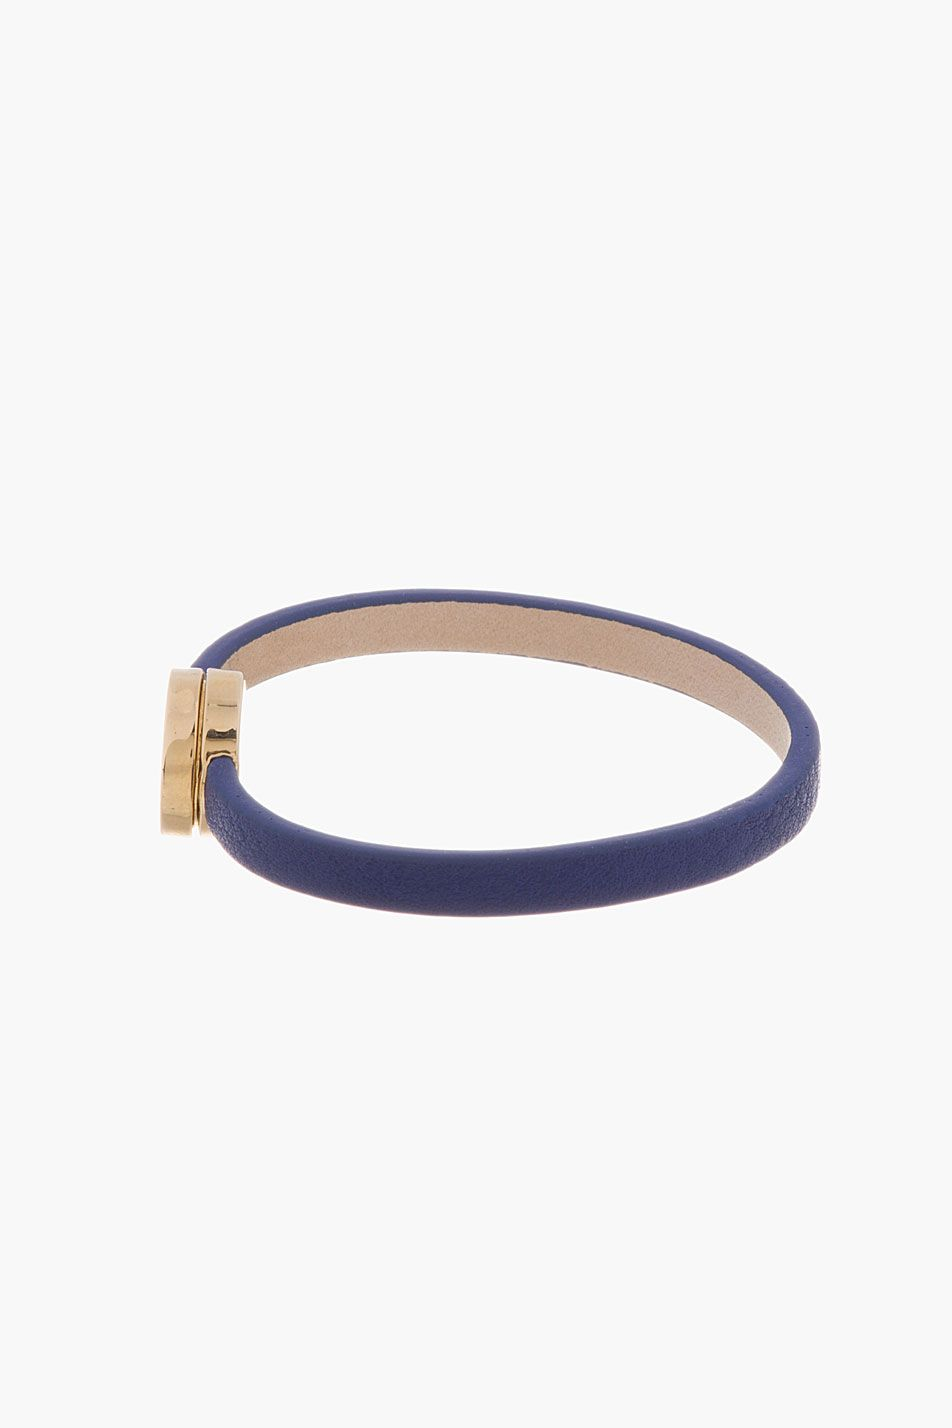 MARC BY MARC JACOBS Blue leather Skinny Turnlock bracelet